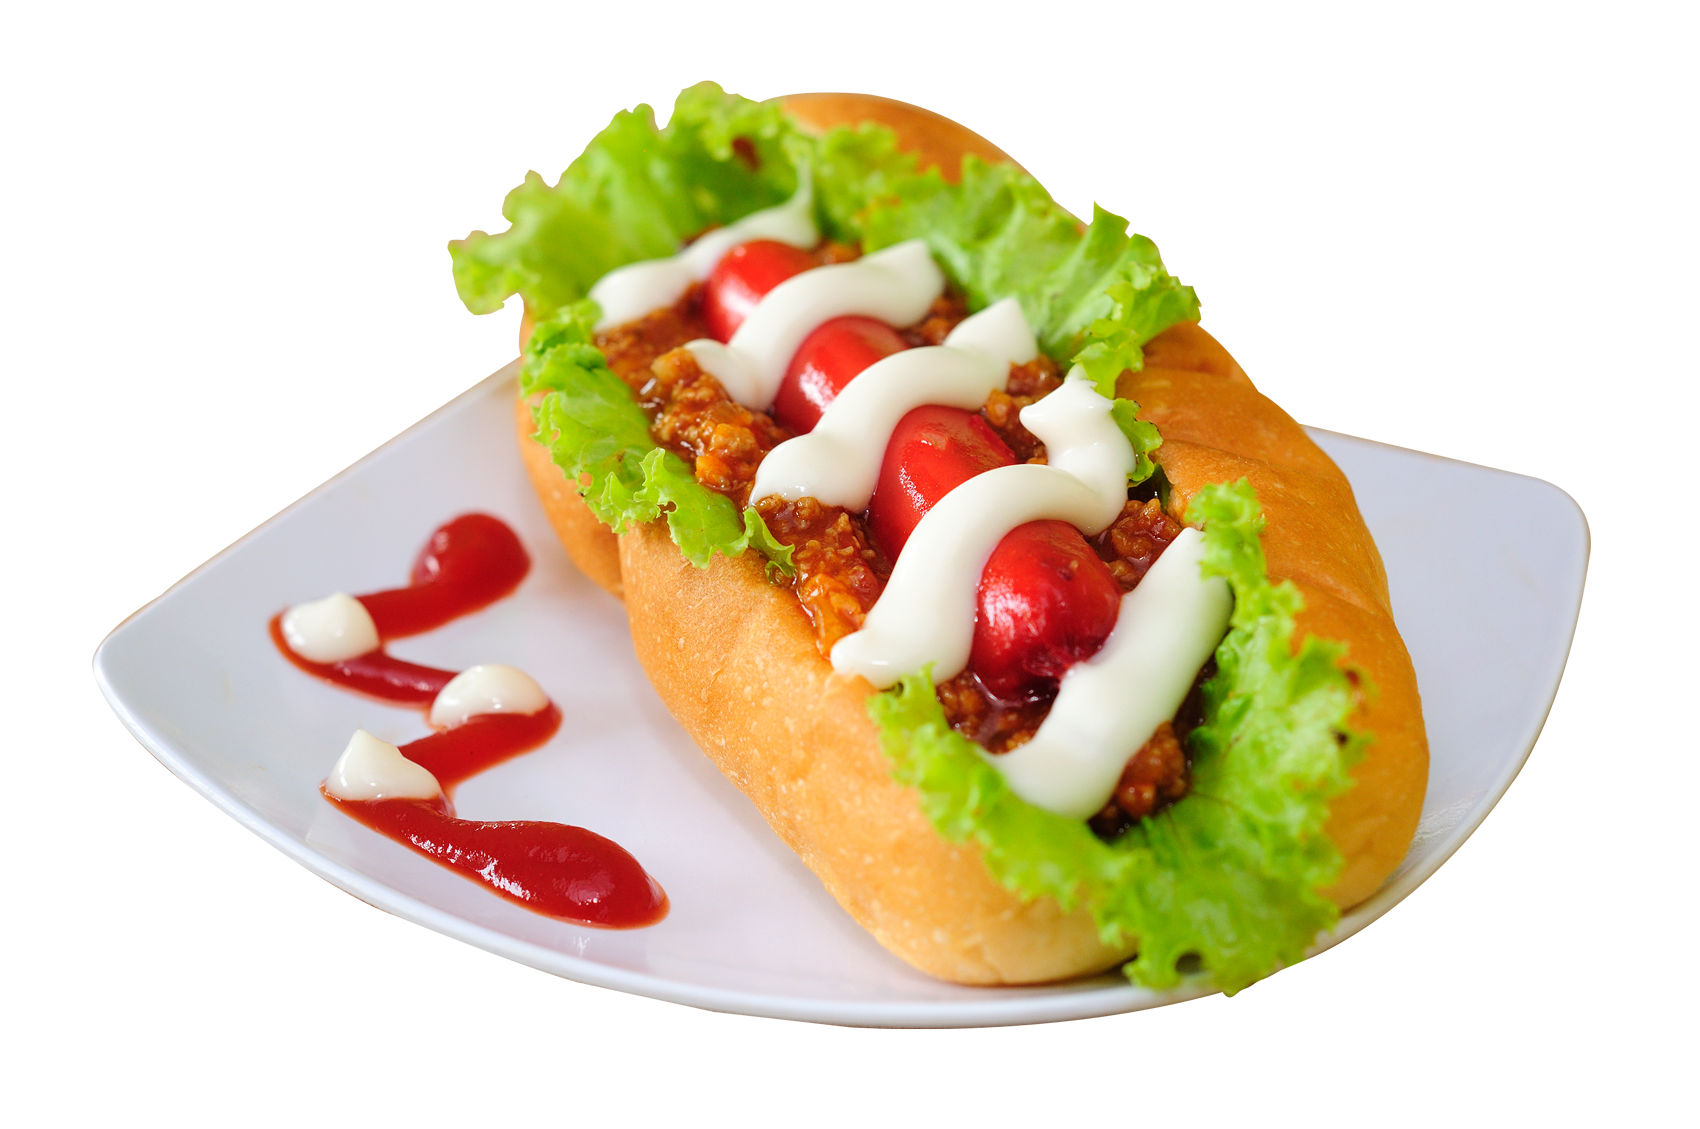 Hot Dog Png Image Carrot Hot Dogs Recipe Hot Dogs Food